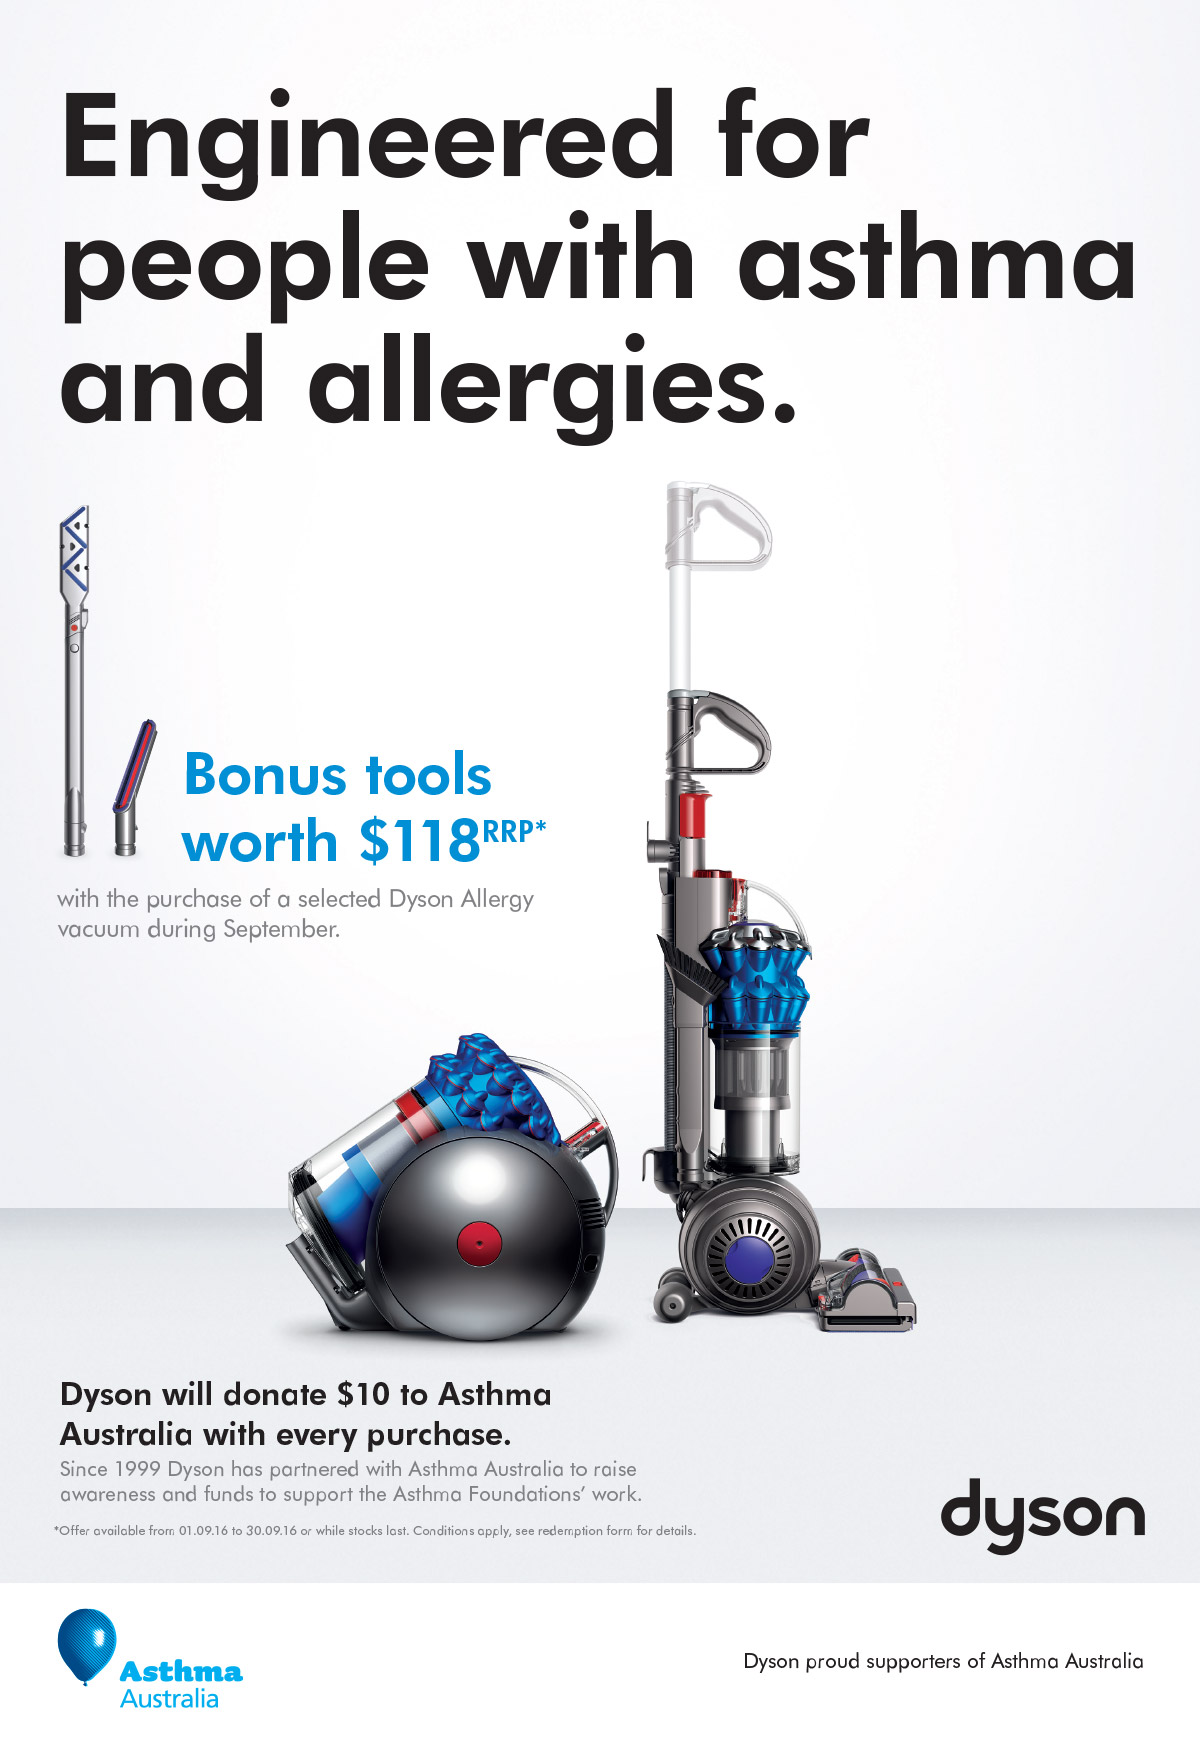 asthma australia promo 2016 discover dyson. Black Bedroom Furniture Sets. Home Design Ideas